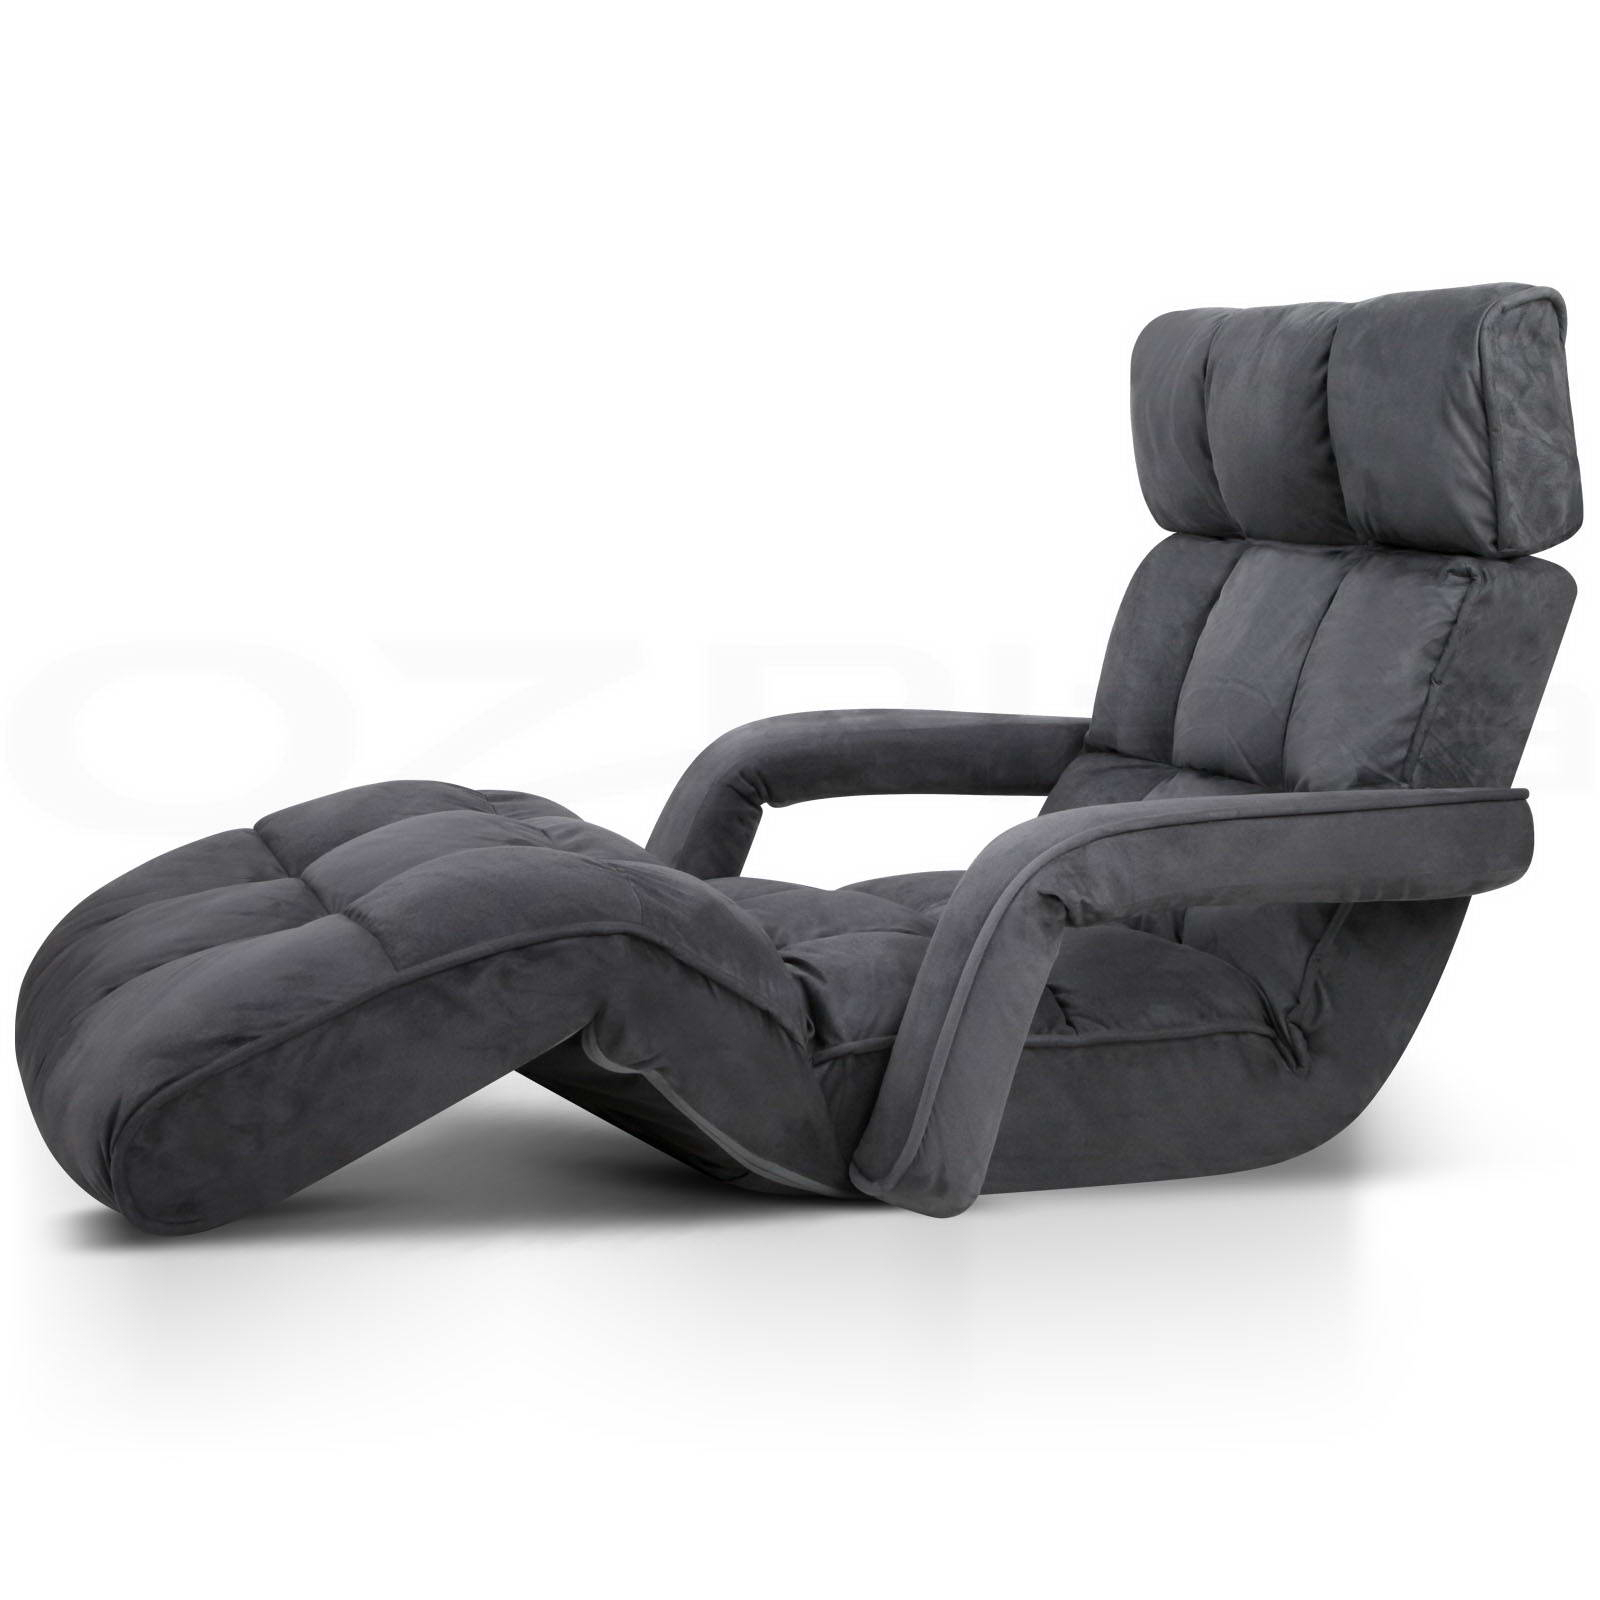 Lounge Sofa Bed Floor Armchair Folding Recliner Chaise Pertaining To Sofa Lounge Chairs (View 15 of 15)